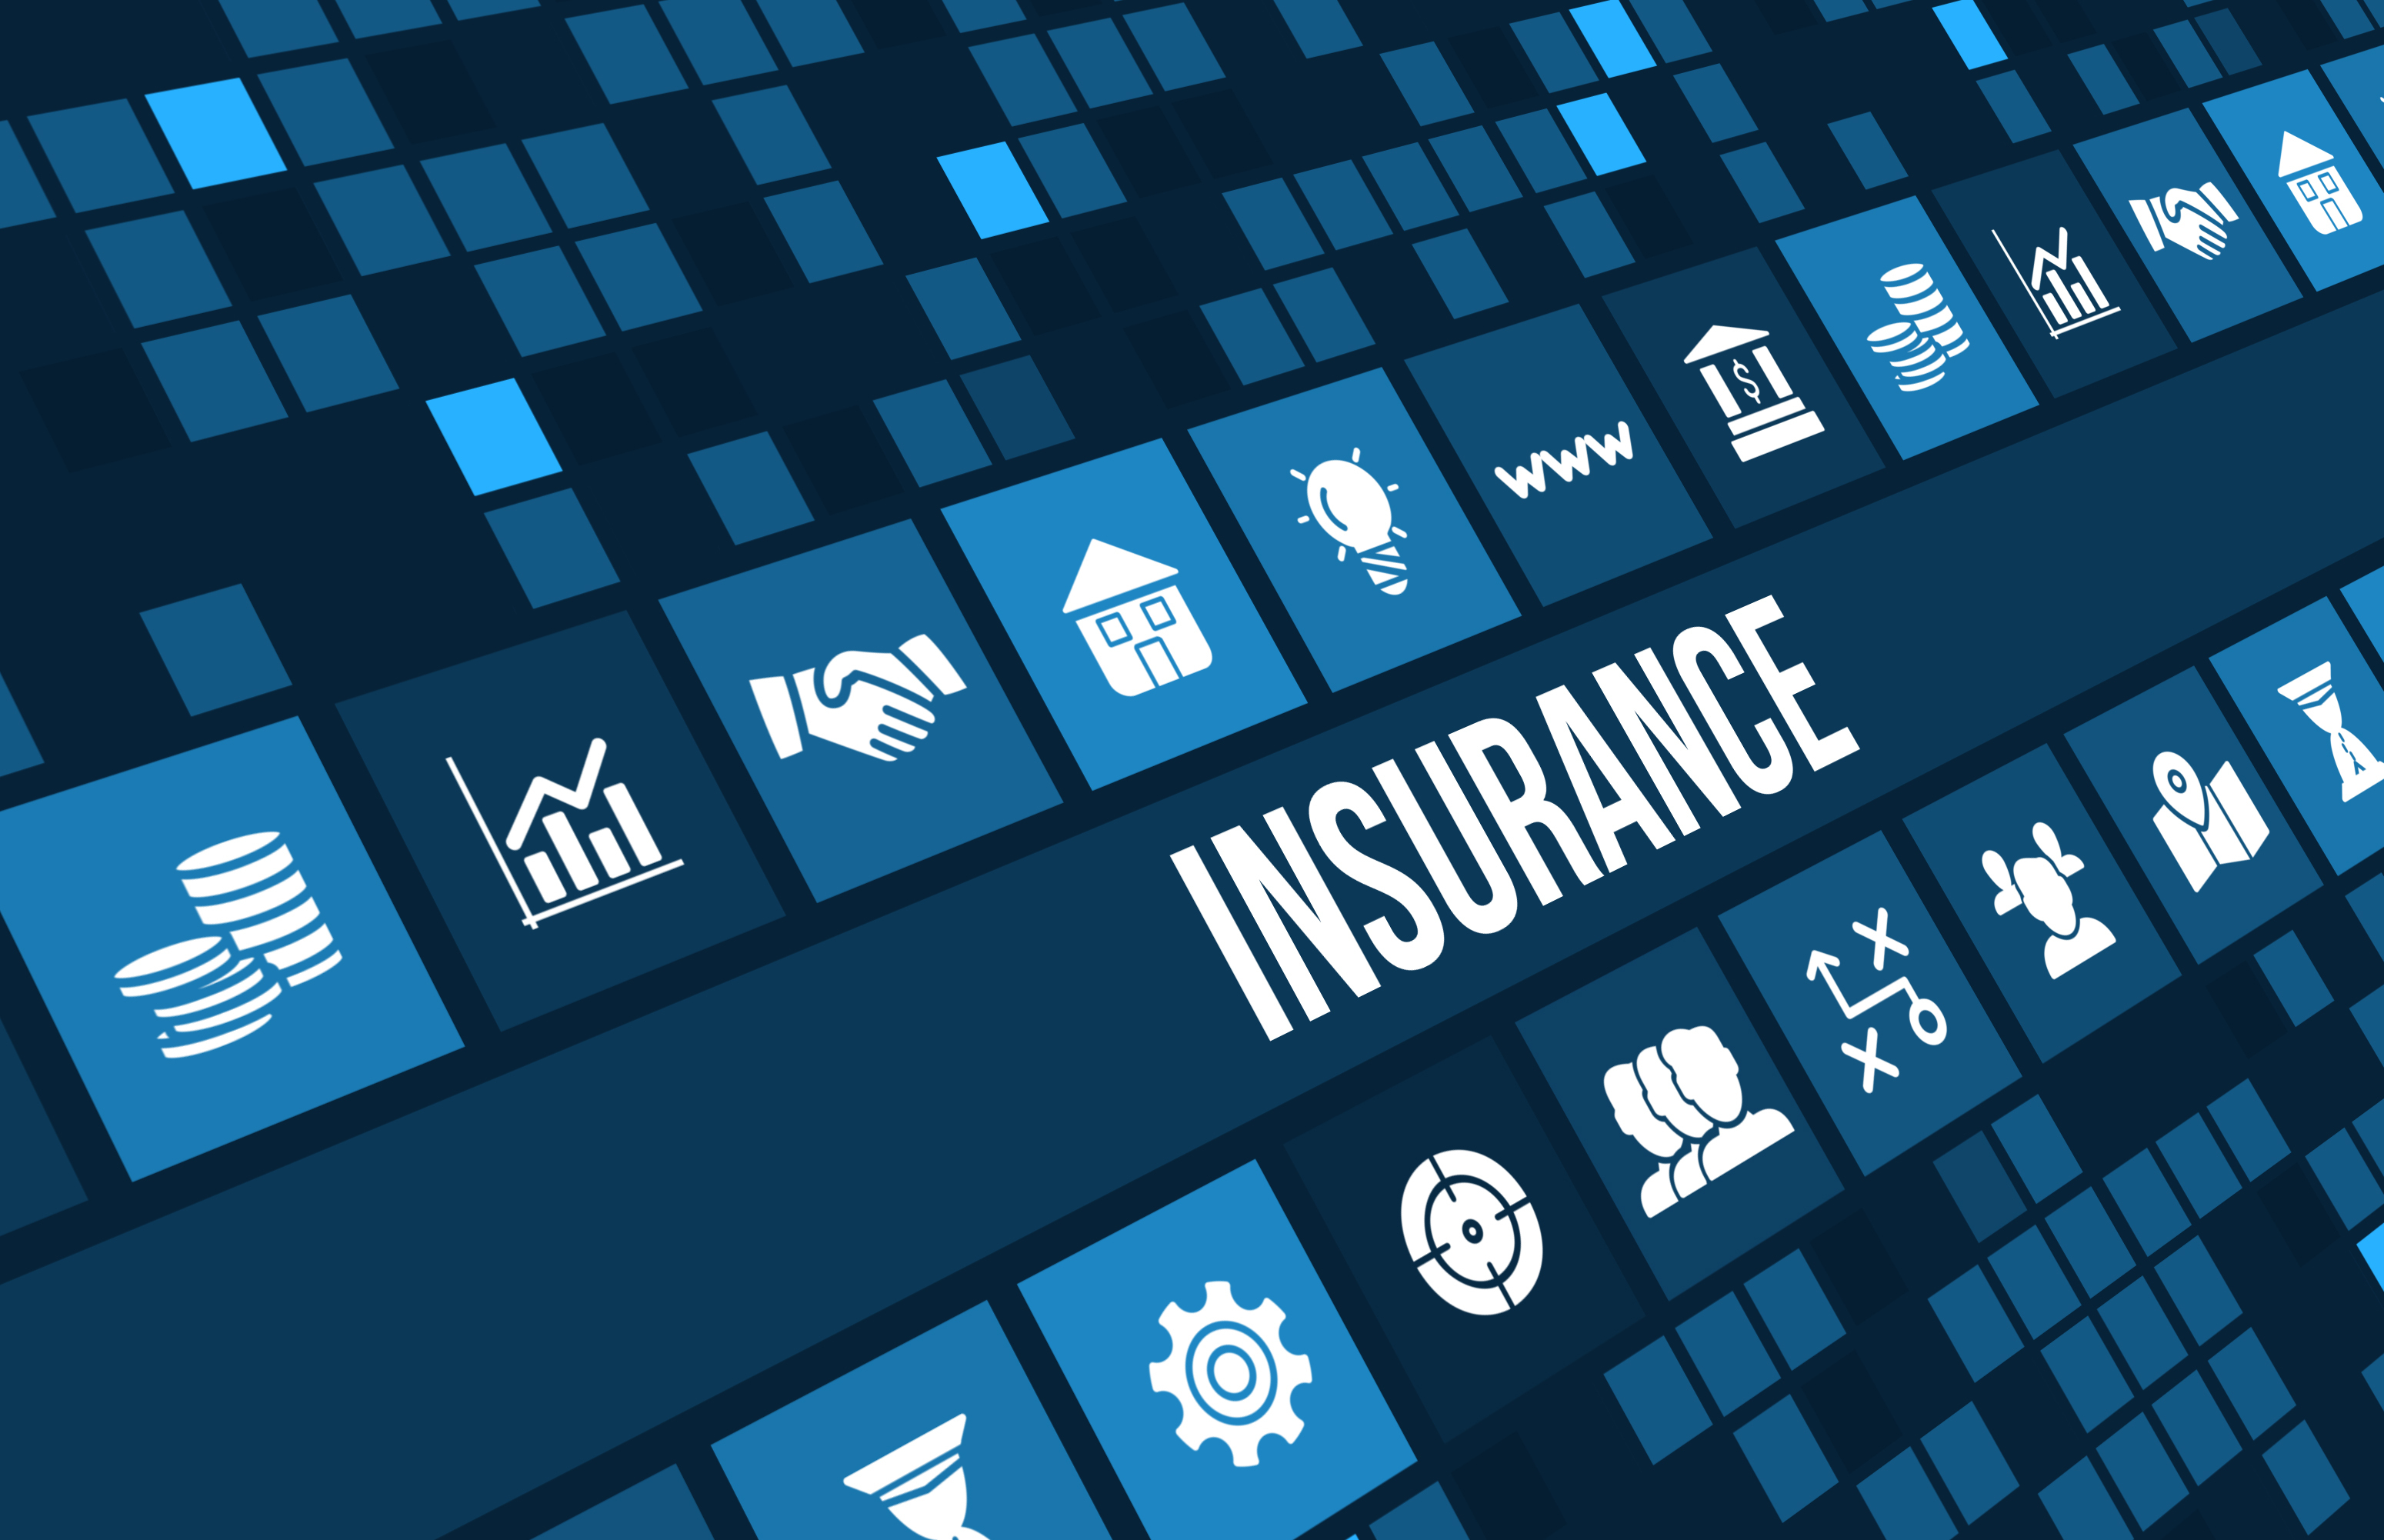 Should Insurers be responsible for Data Validation?